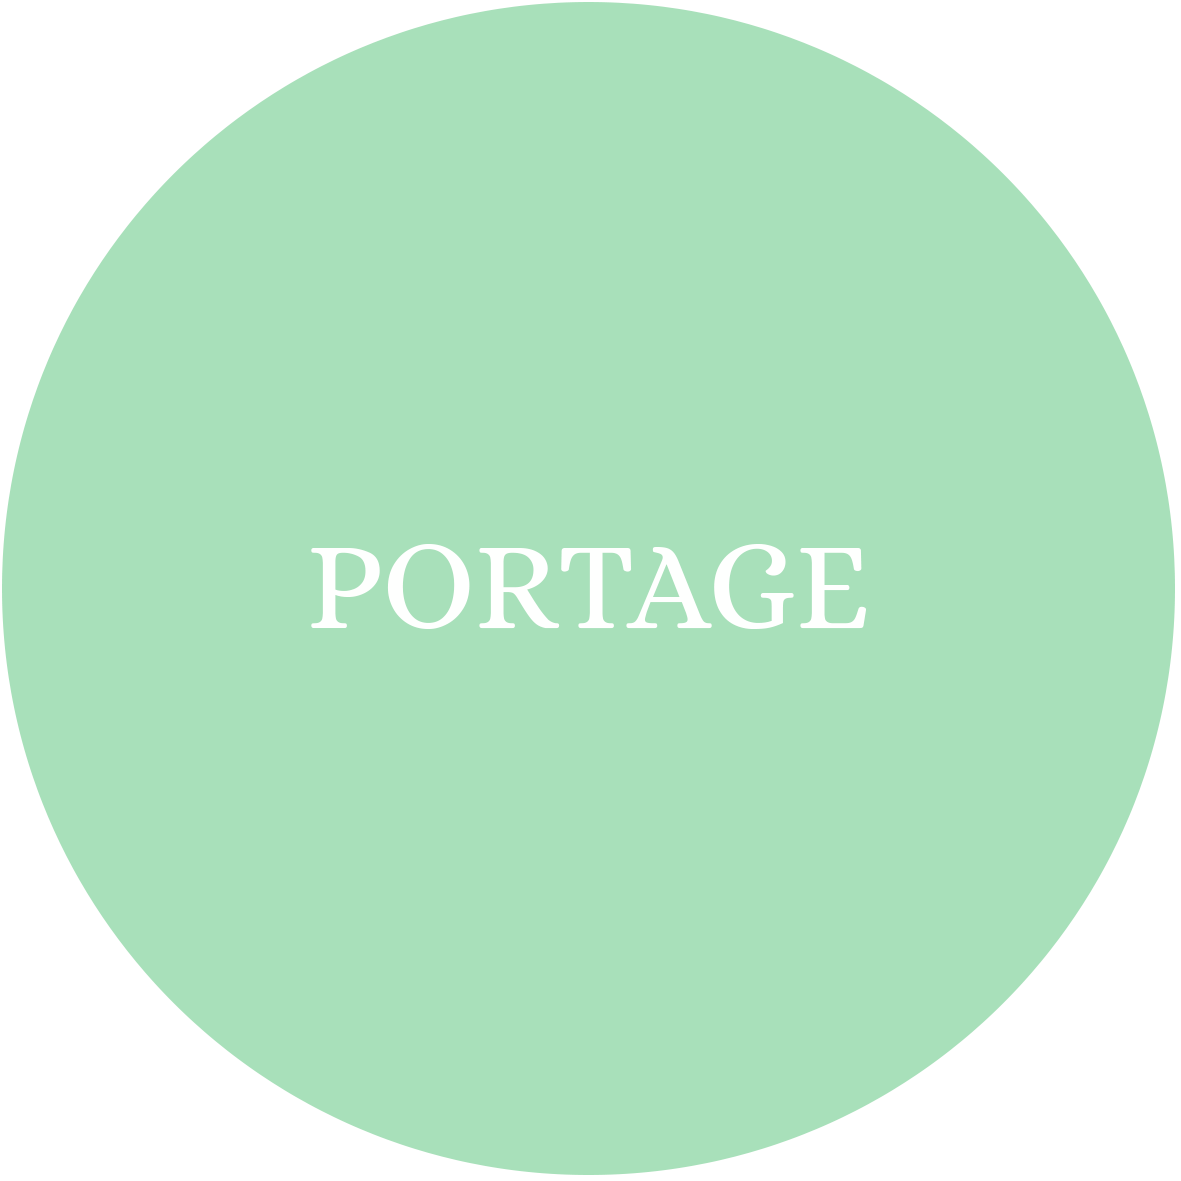 portage.png